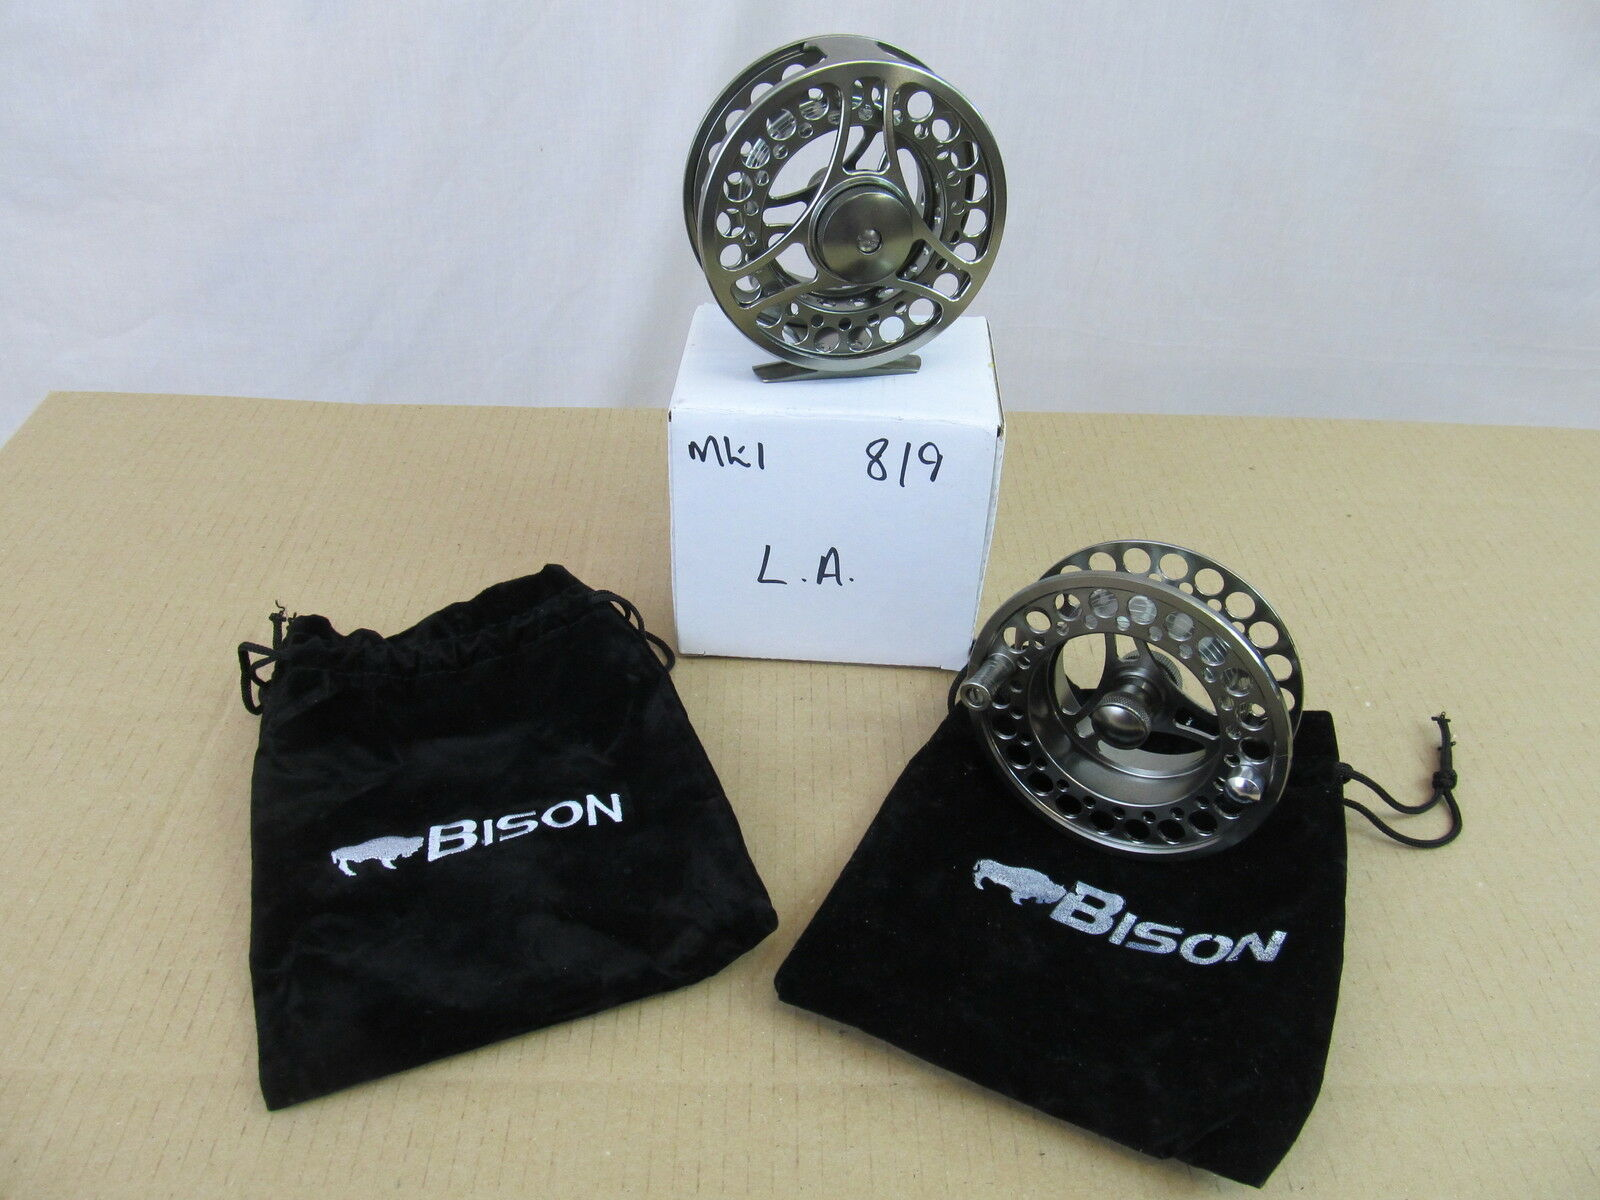 Special Offer Bison LA   9 Large Arbor Fly Fishing Reel & Spare Spool  cost-effective